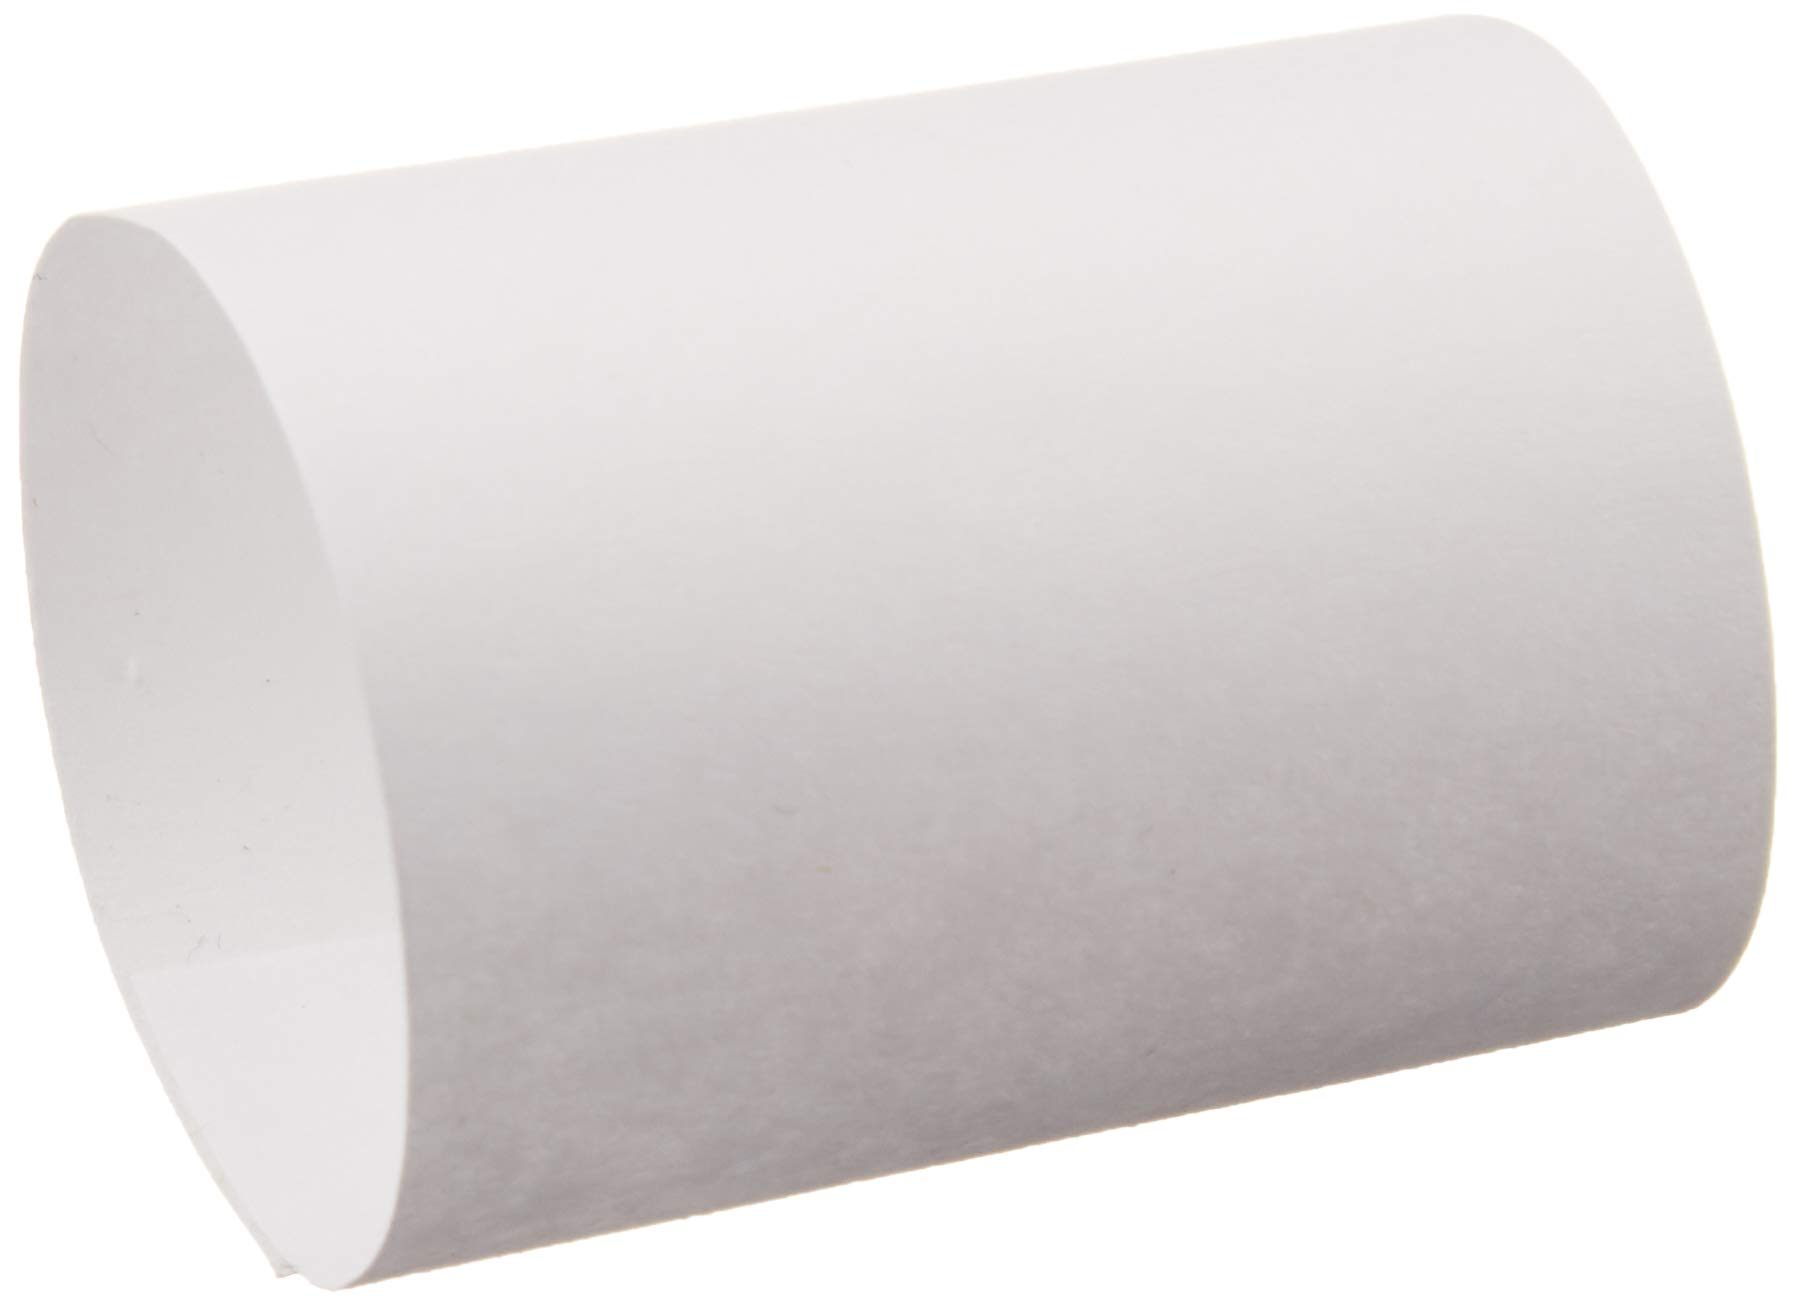 "Amazon Basics Napkin Band, 4.25"" x 1.5"", White, 5000-Count"